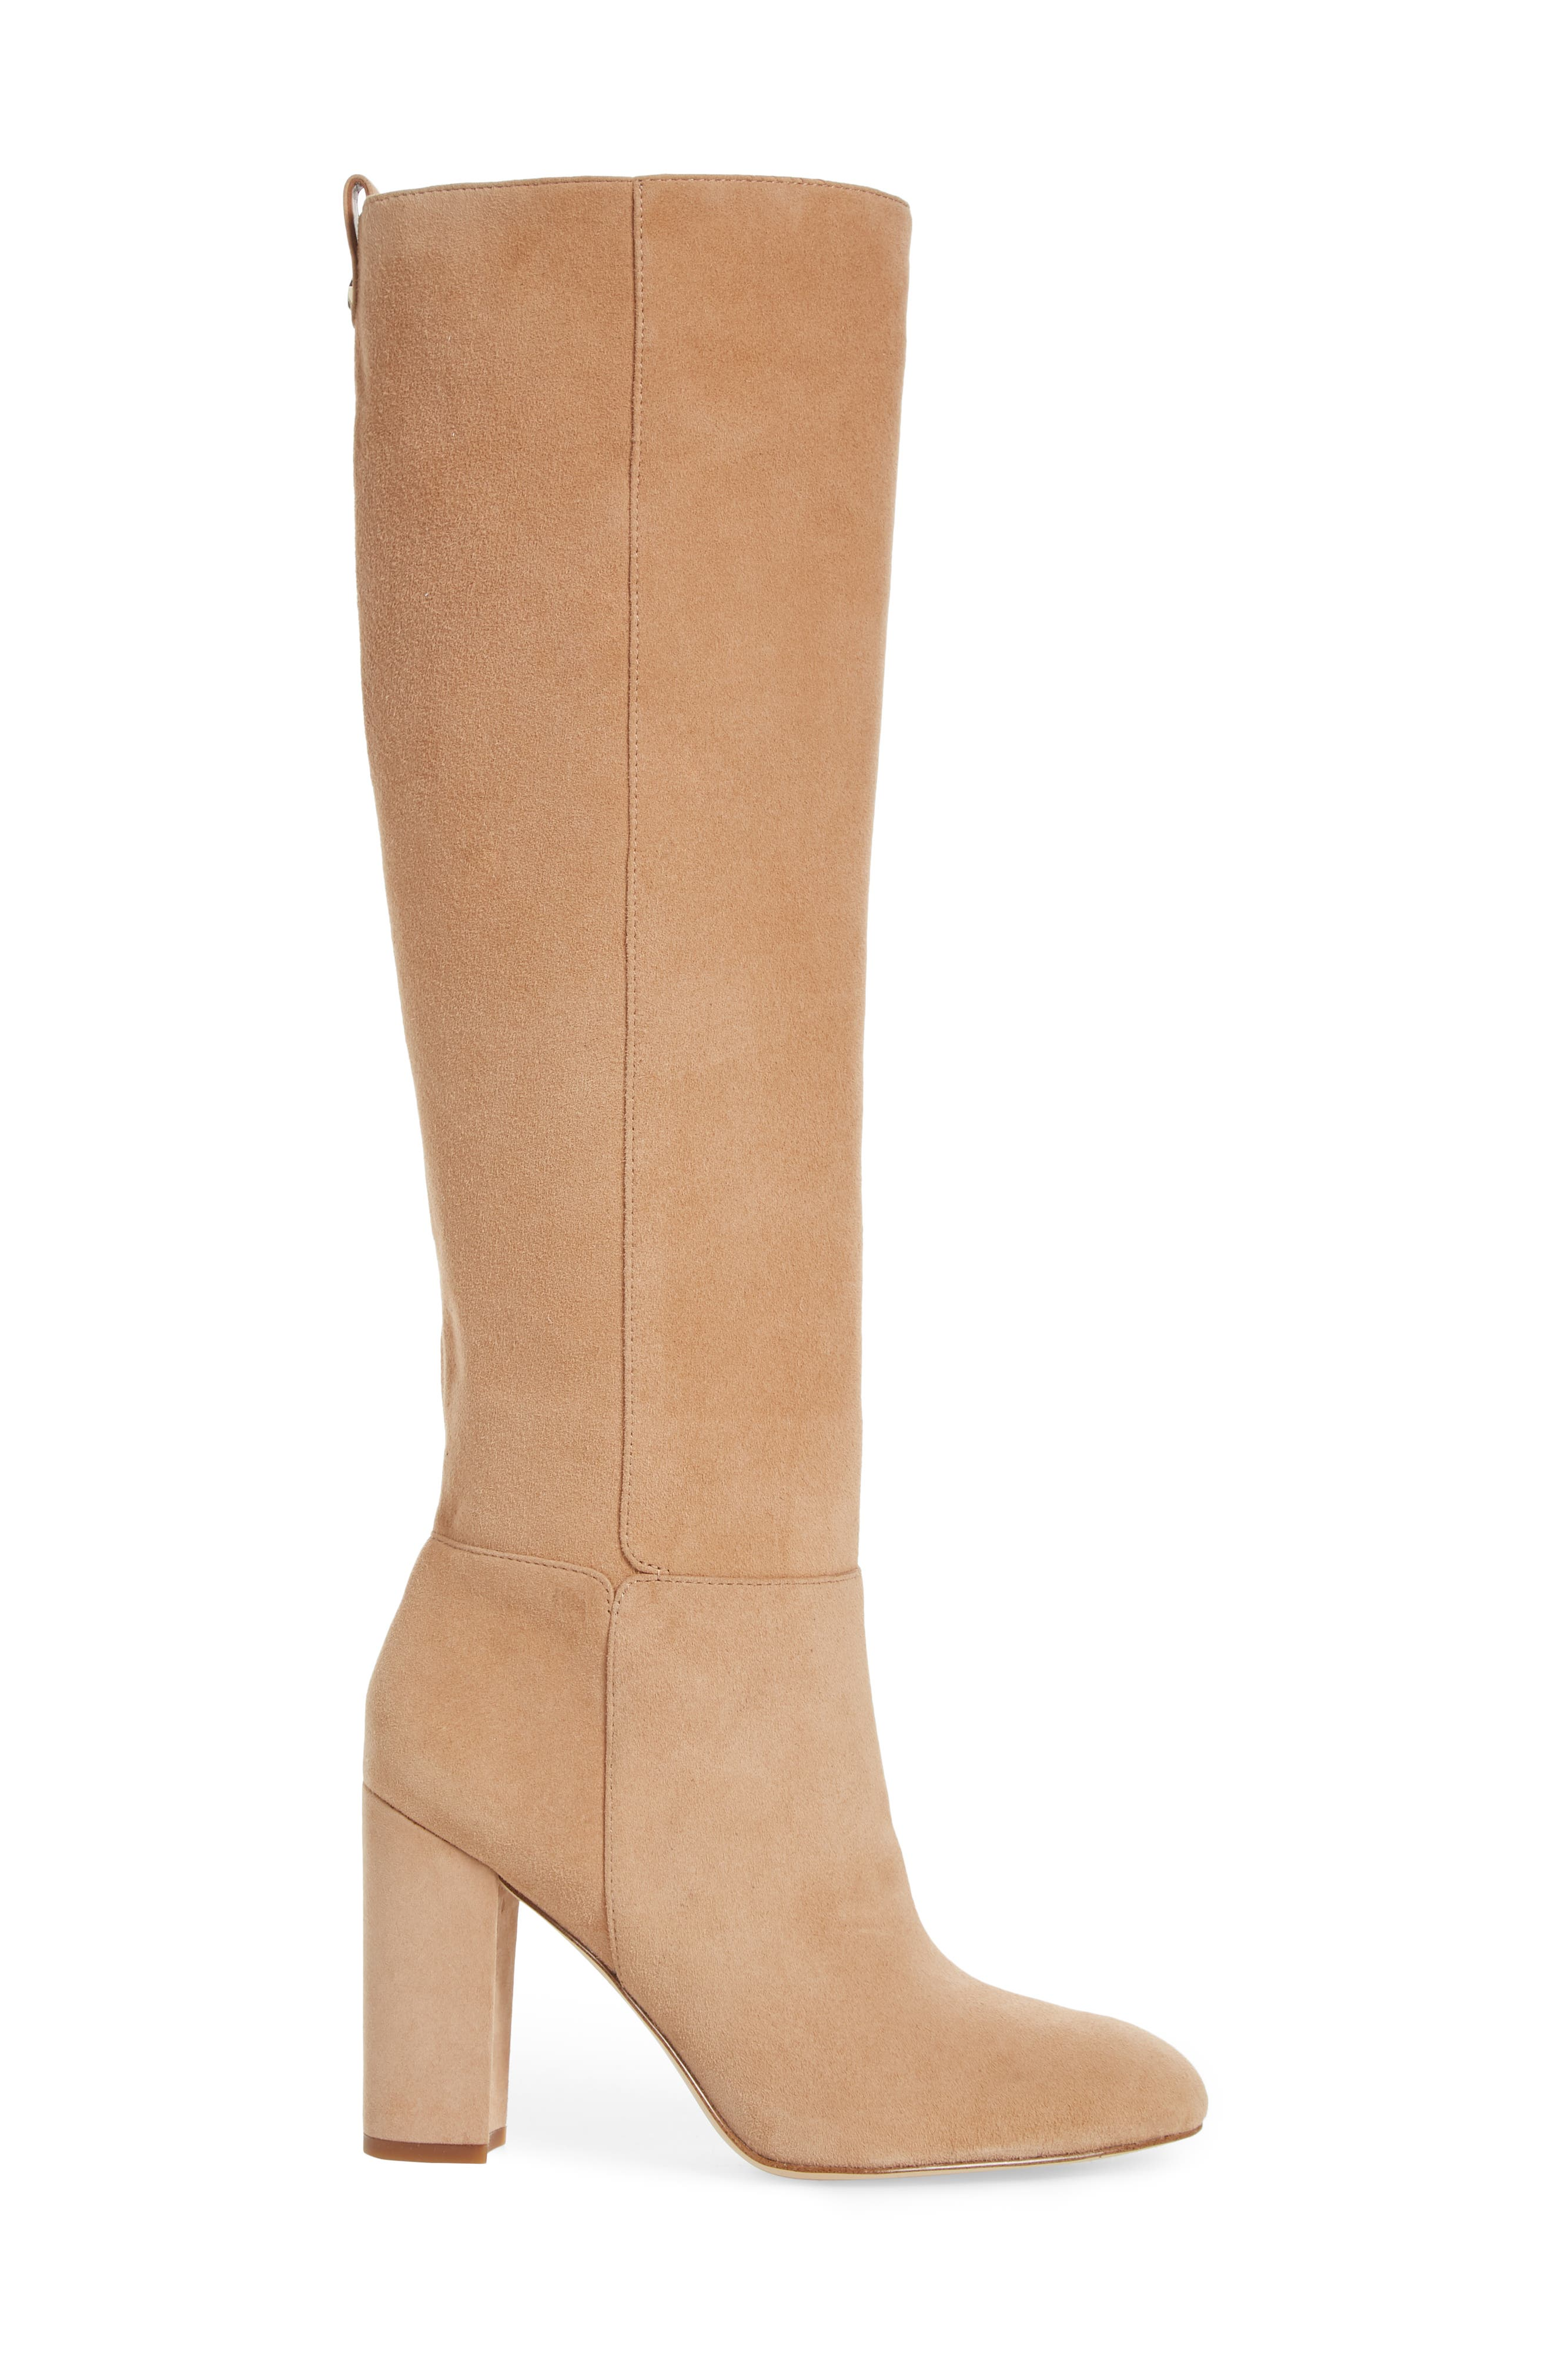 Caprice Knee-High Boot,                             Alternate thumbnail 3, color,                             GOLDEN CARAMEL SUEDE